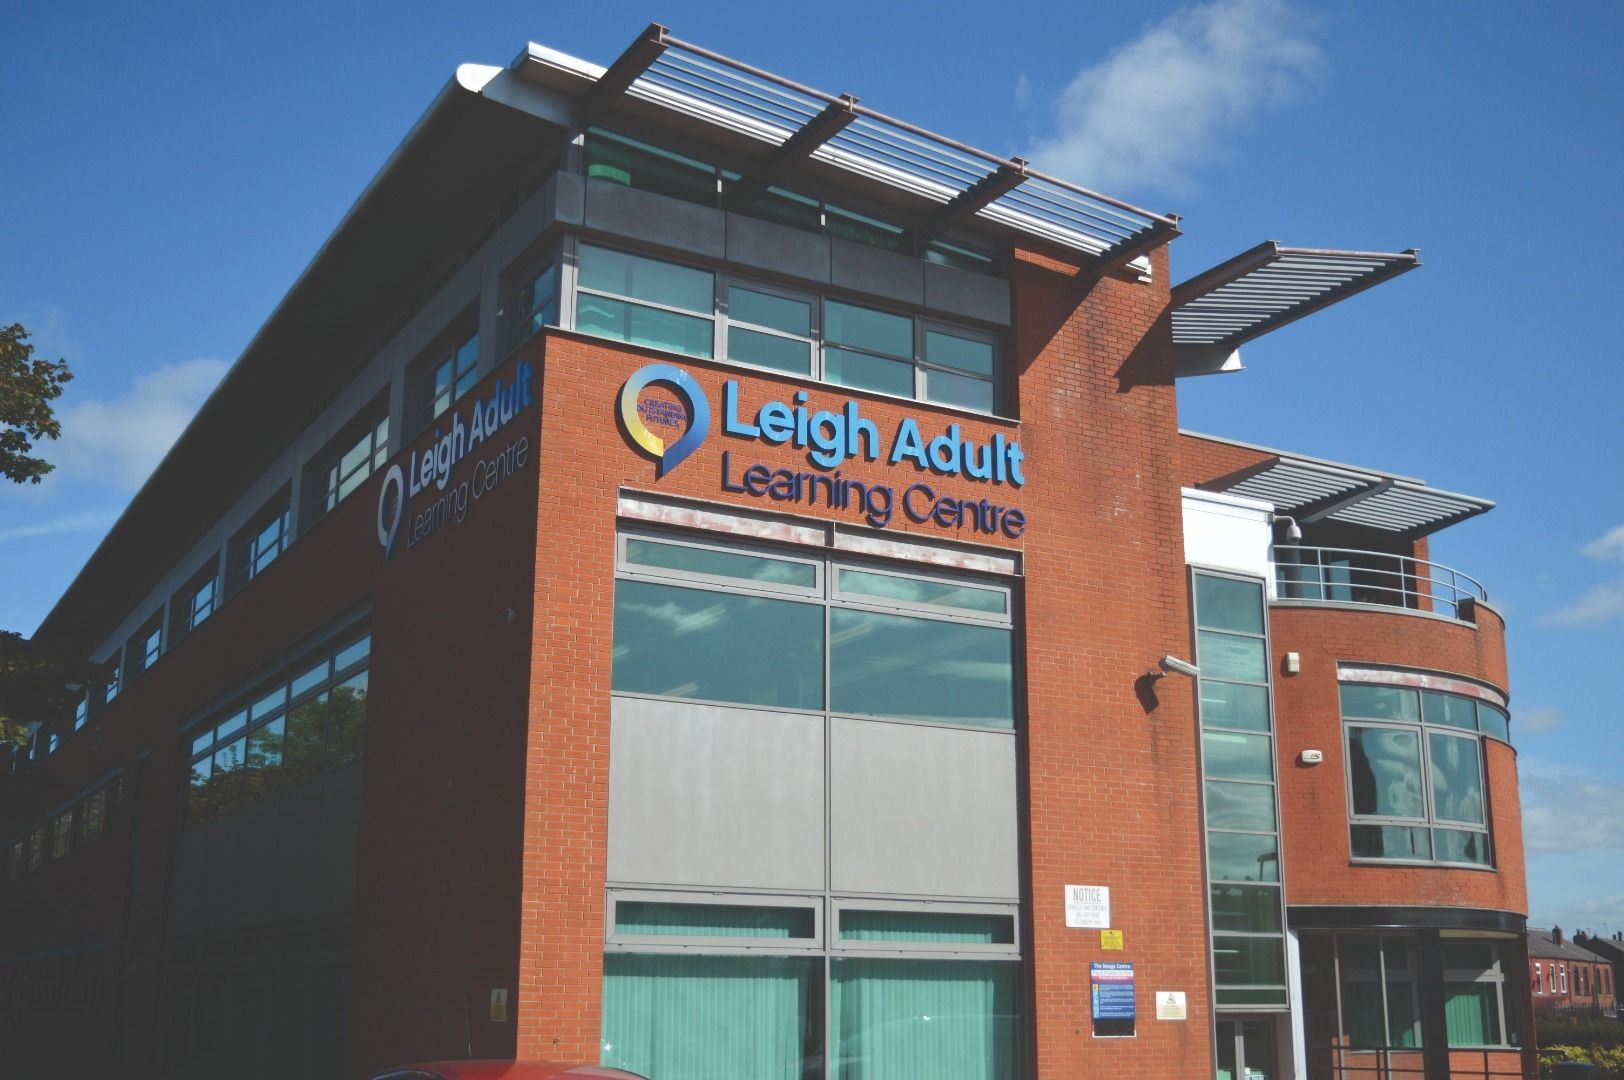 Leigh Adult Learning Centre Building Photo